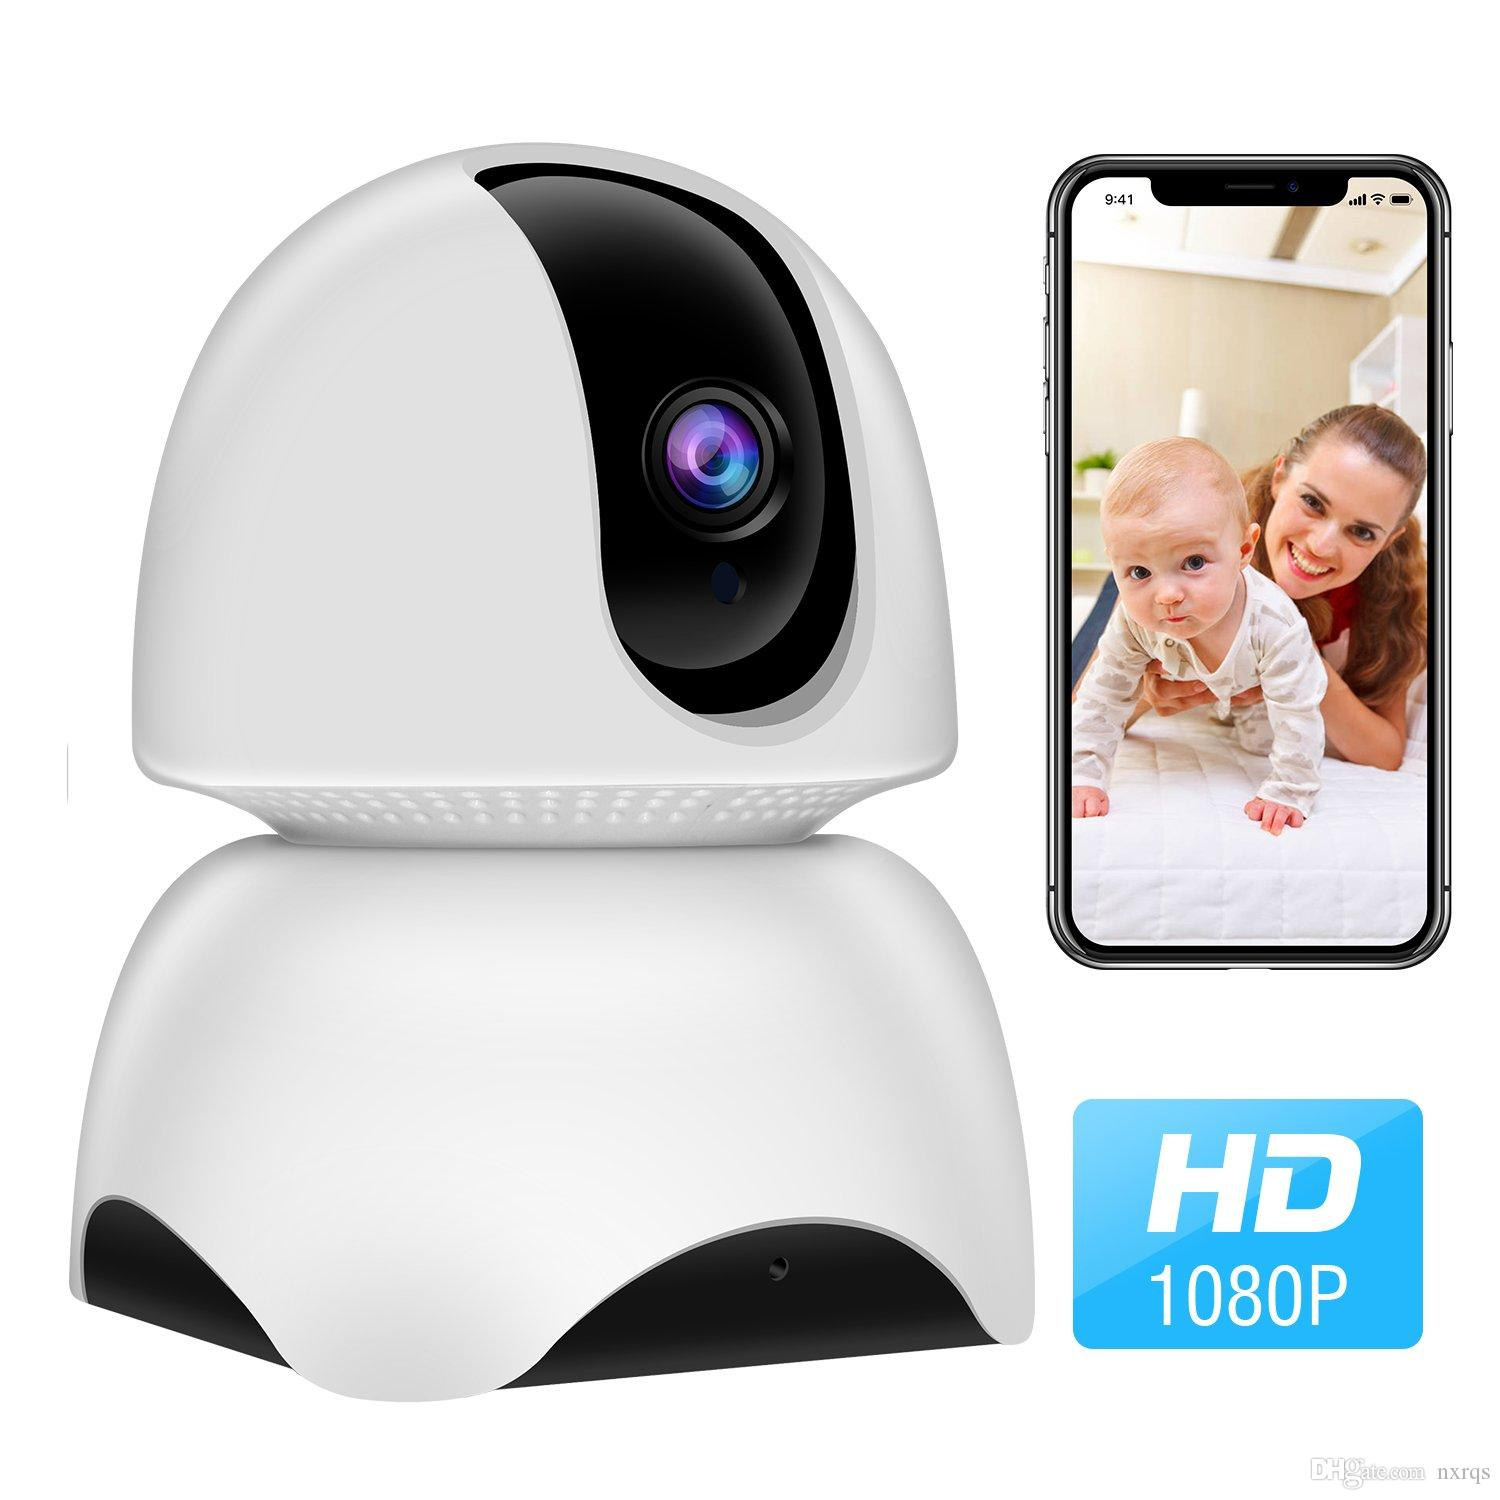 1080P Wireless IP Camera, 360 Home WiFi Security Camera Indoor Surveillance  Camera System Panorama View for Pet/Baby Monitor Remote Viewer N